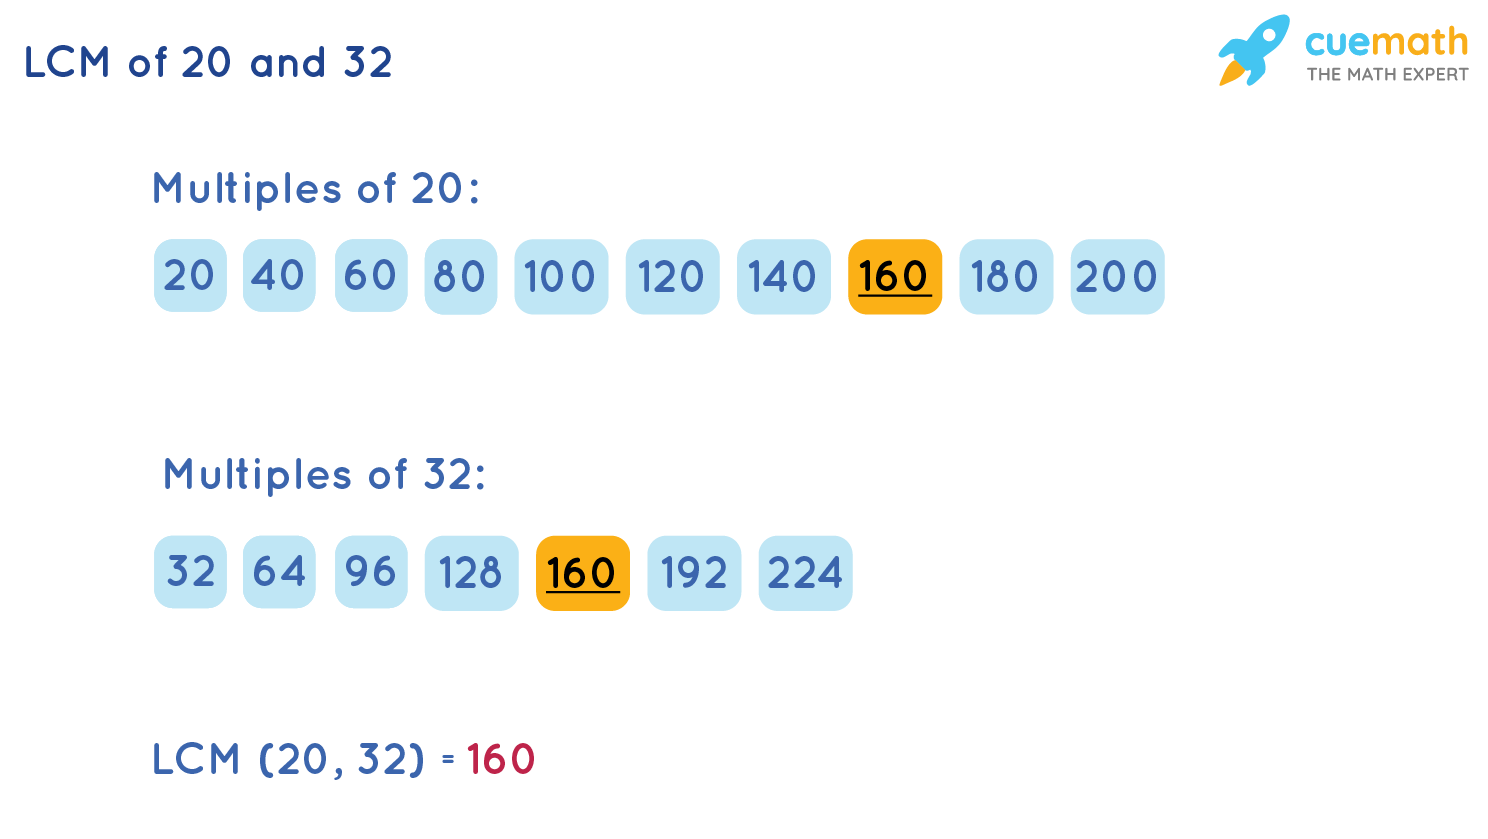 LCM of 20 and 32 by Listing Method